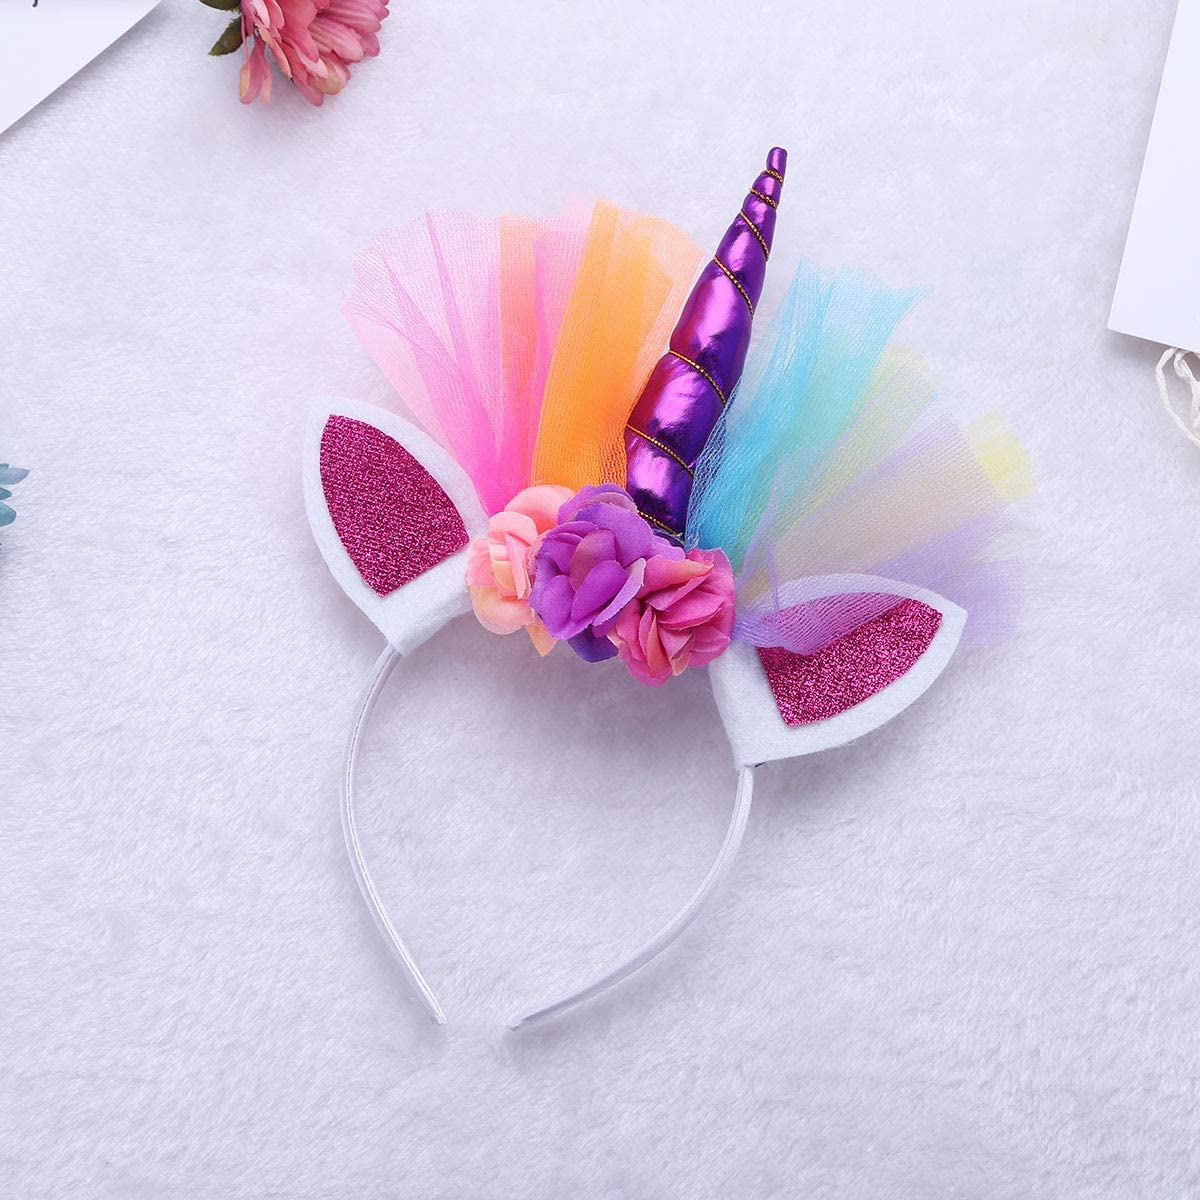 dPois Girls Rainbow Ruffled Pastel Tutu Skirt with Horn Hair Hoop 2Pcs Set Birthday Party Photo Shoot Outfits